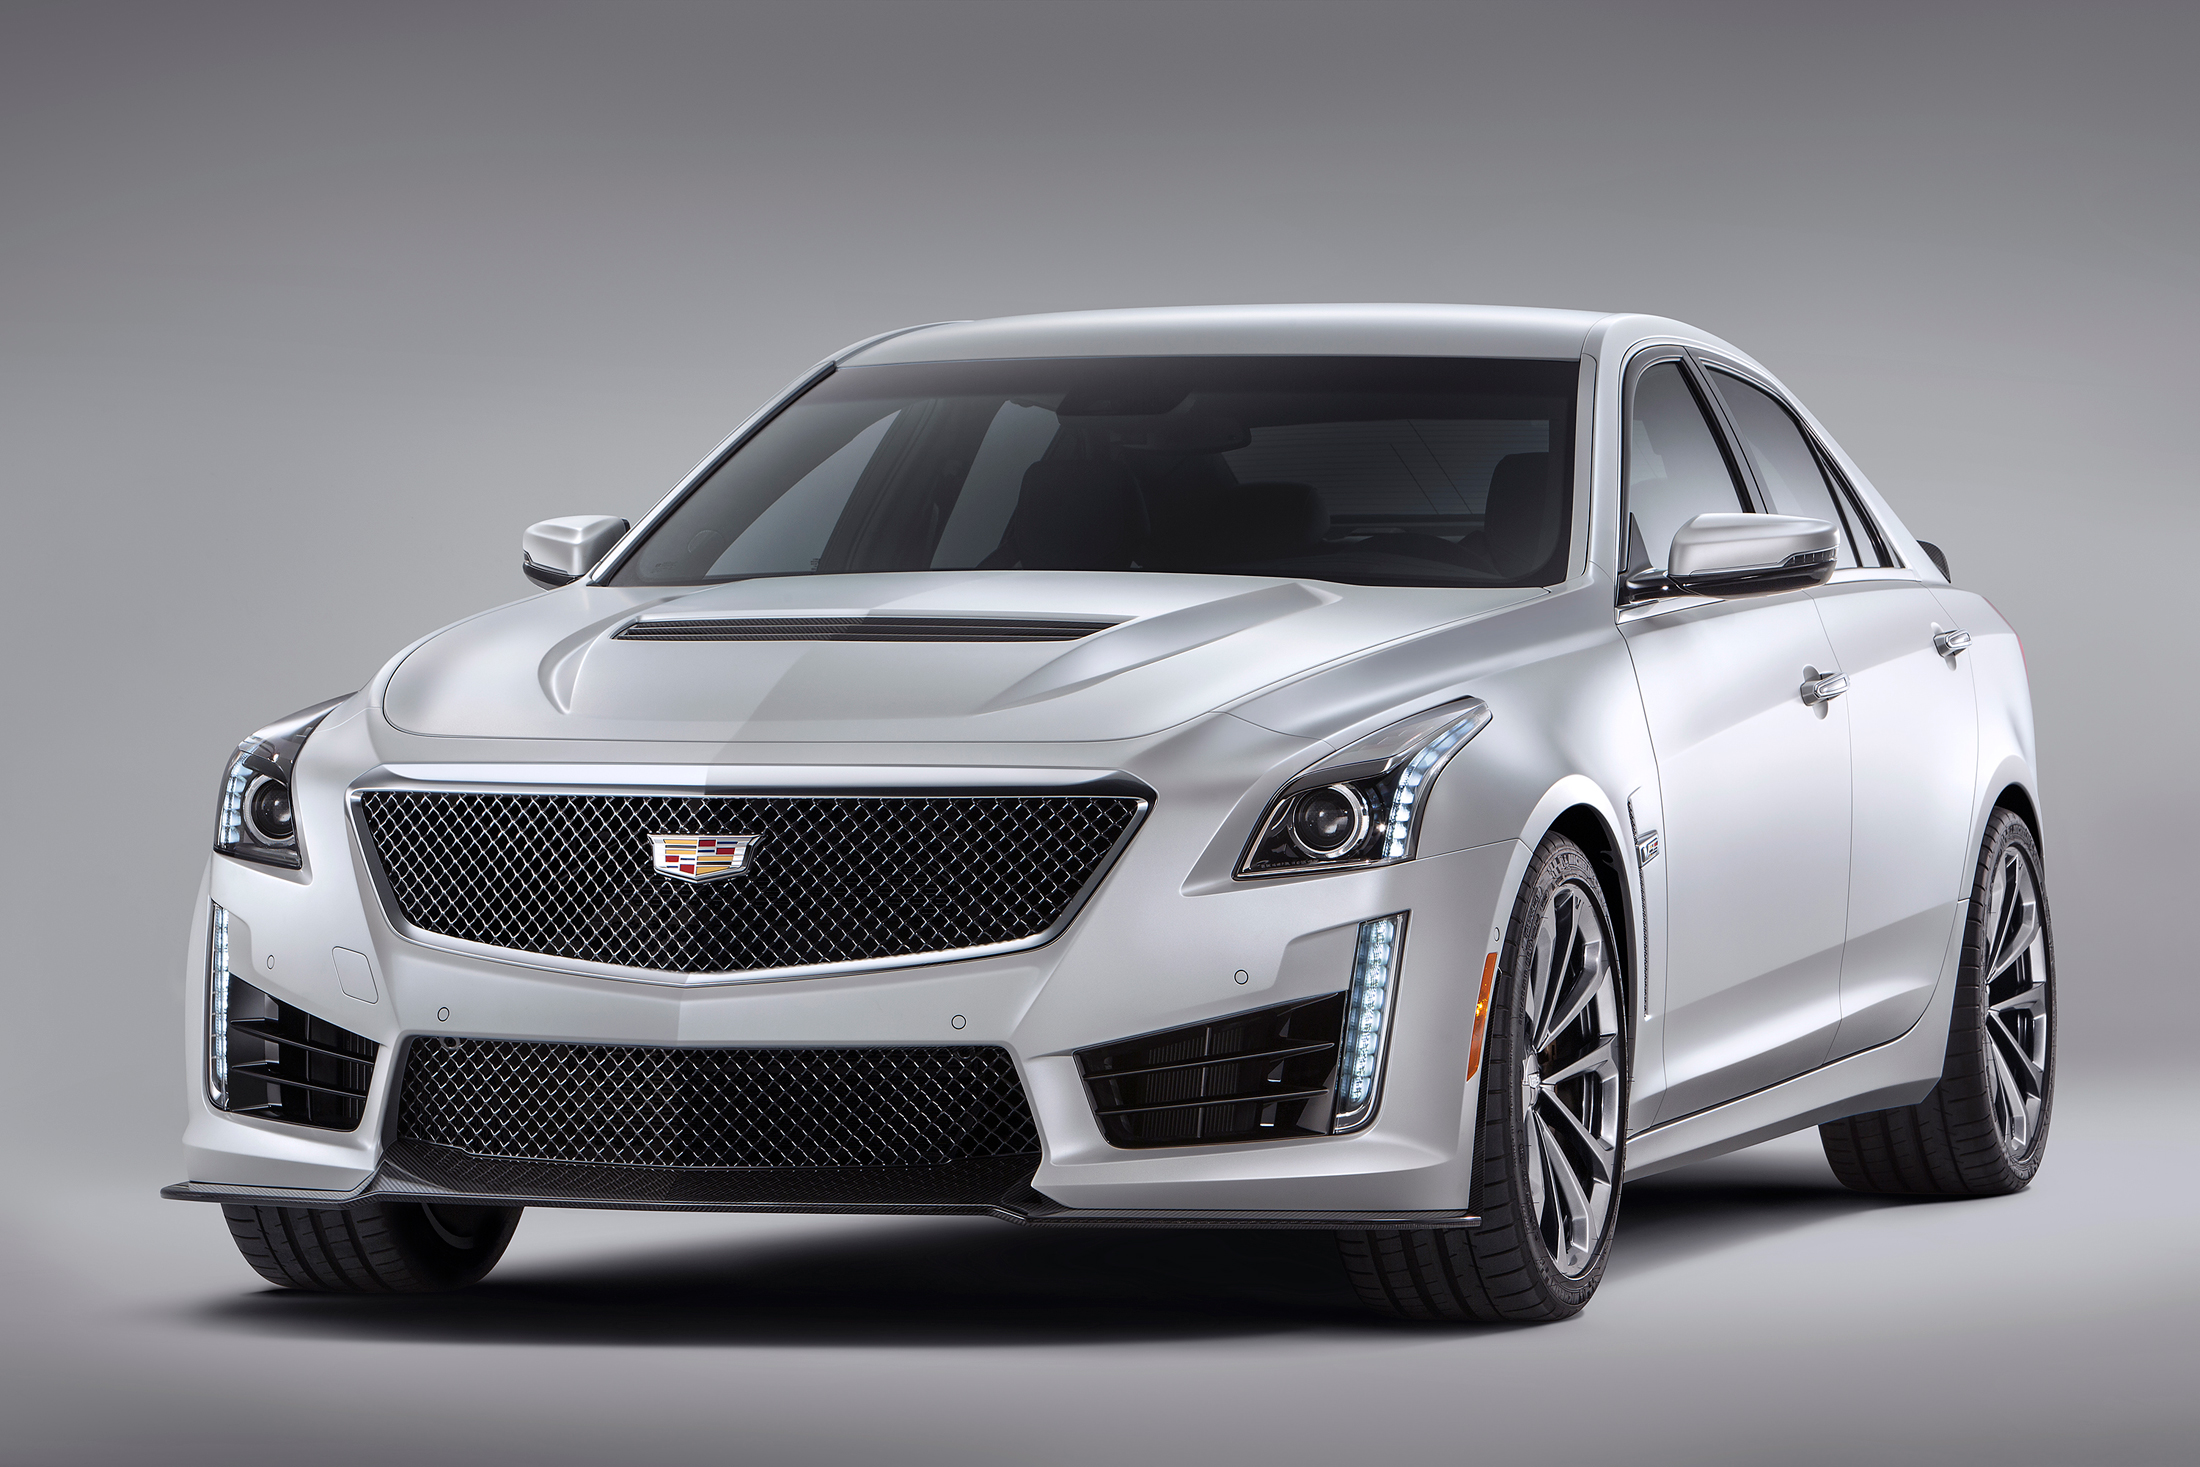 2016 cadillac cts v price starts at 84 990 news. Black Bedroom Furniture Sets. Home Design Ideas